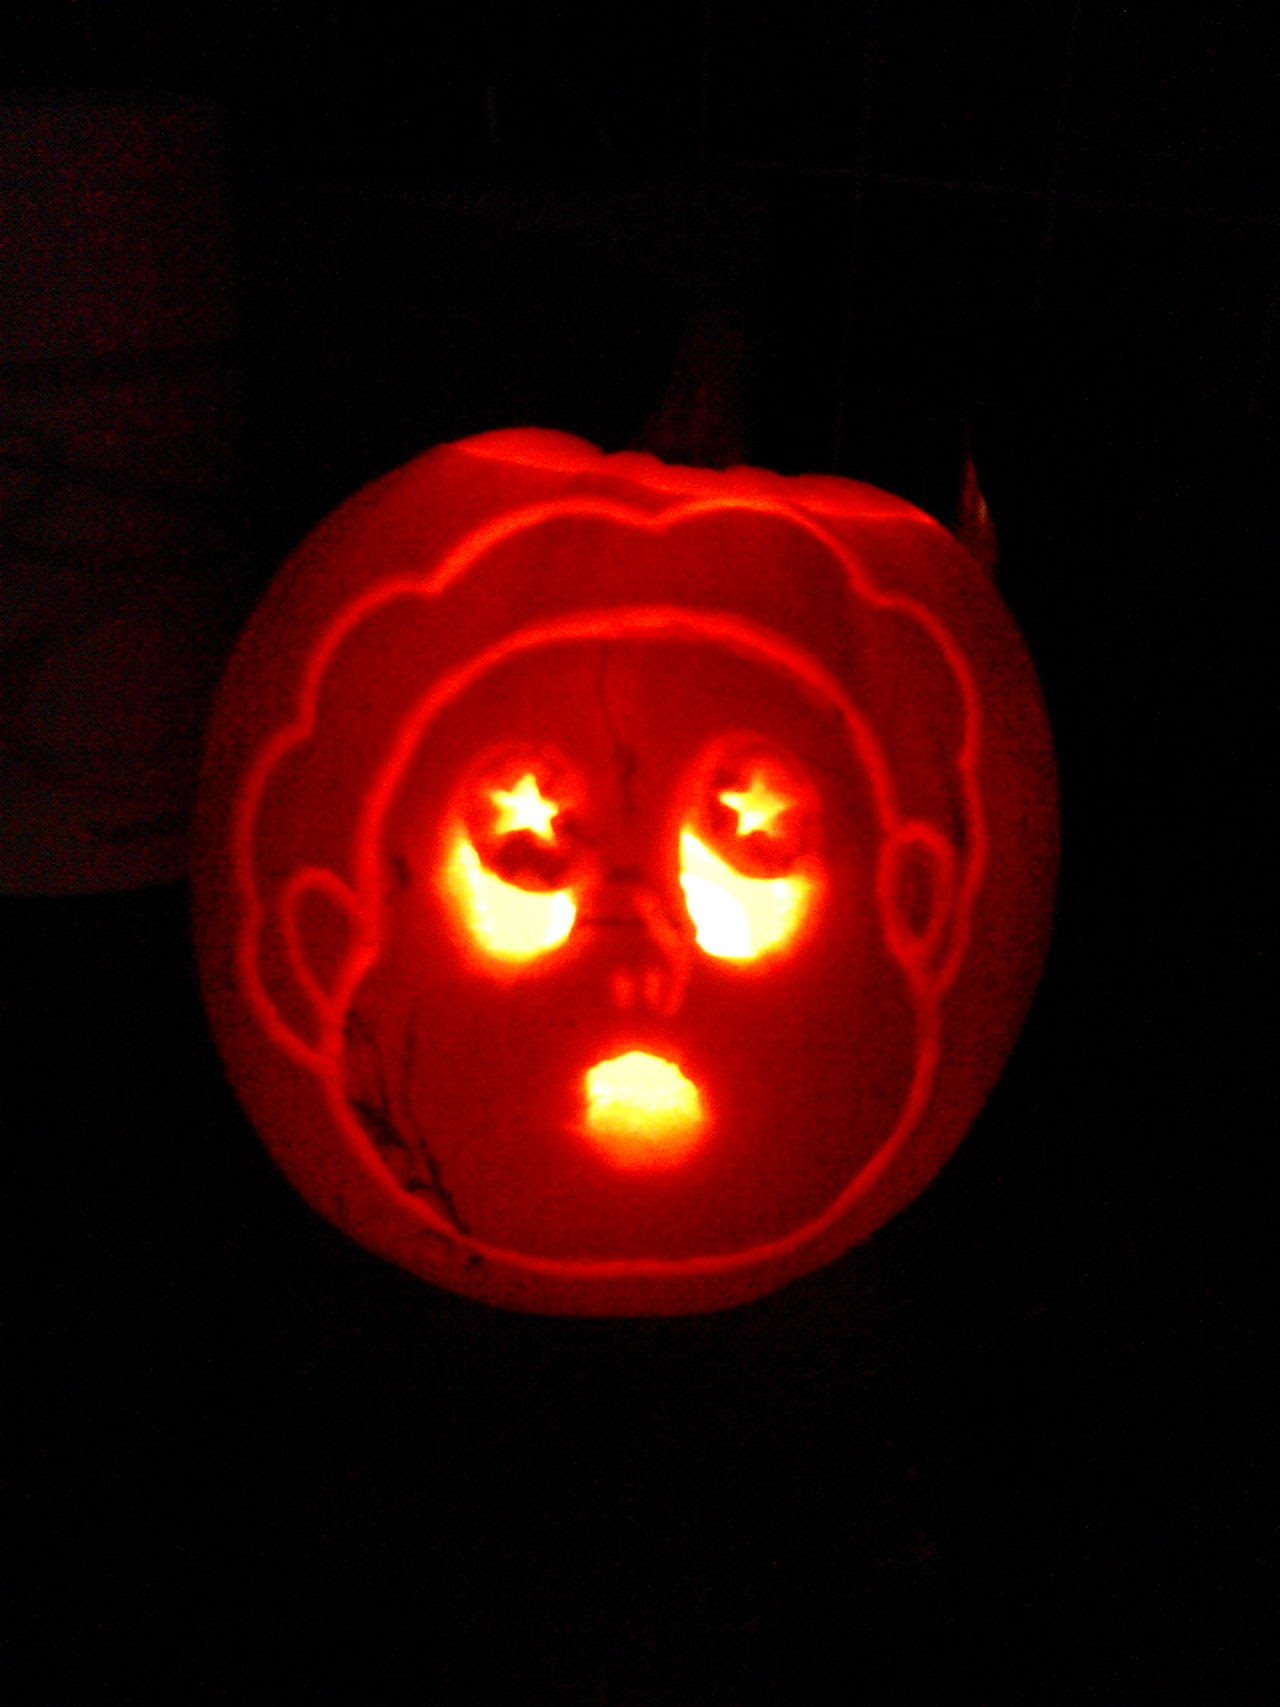 did some pumpkin carving with the gf tonight.